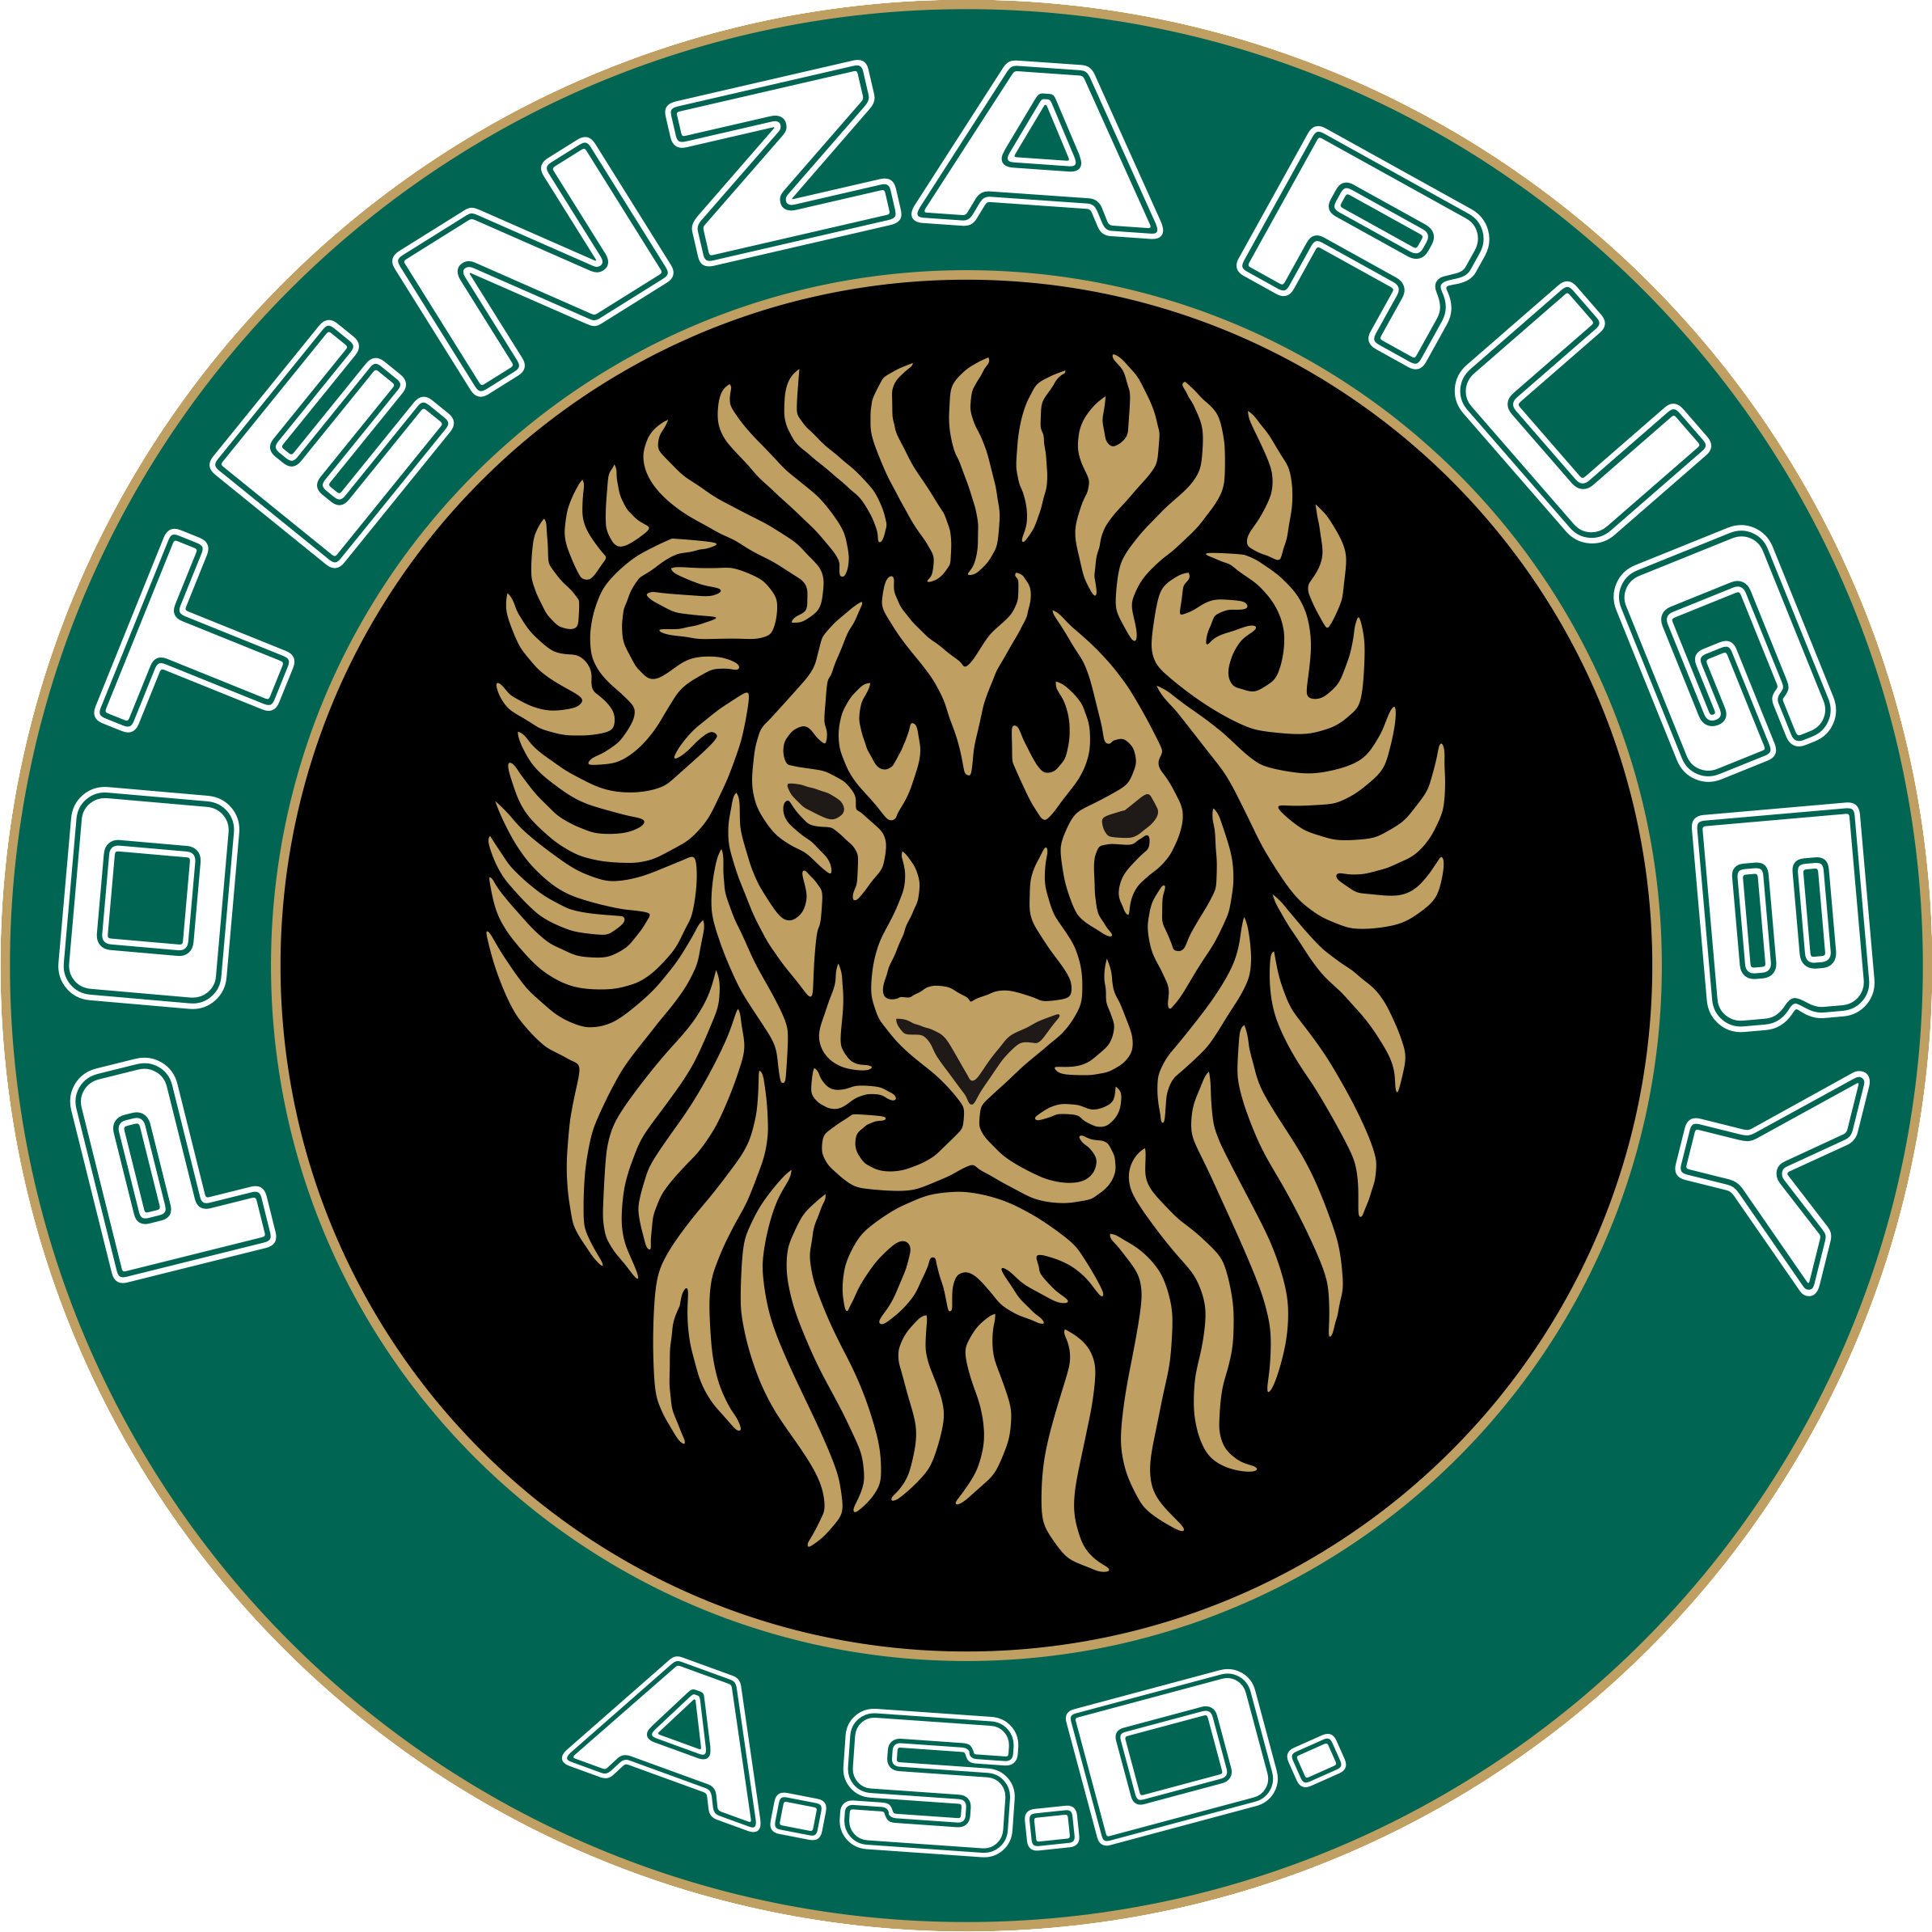 Potenza Rugby